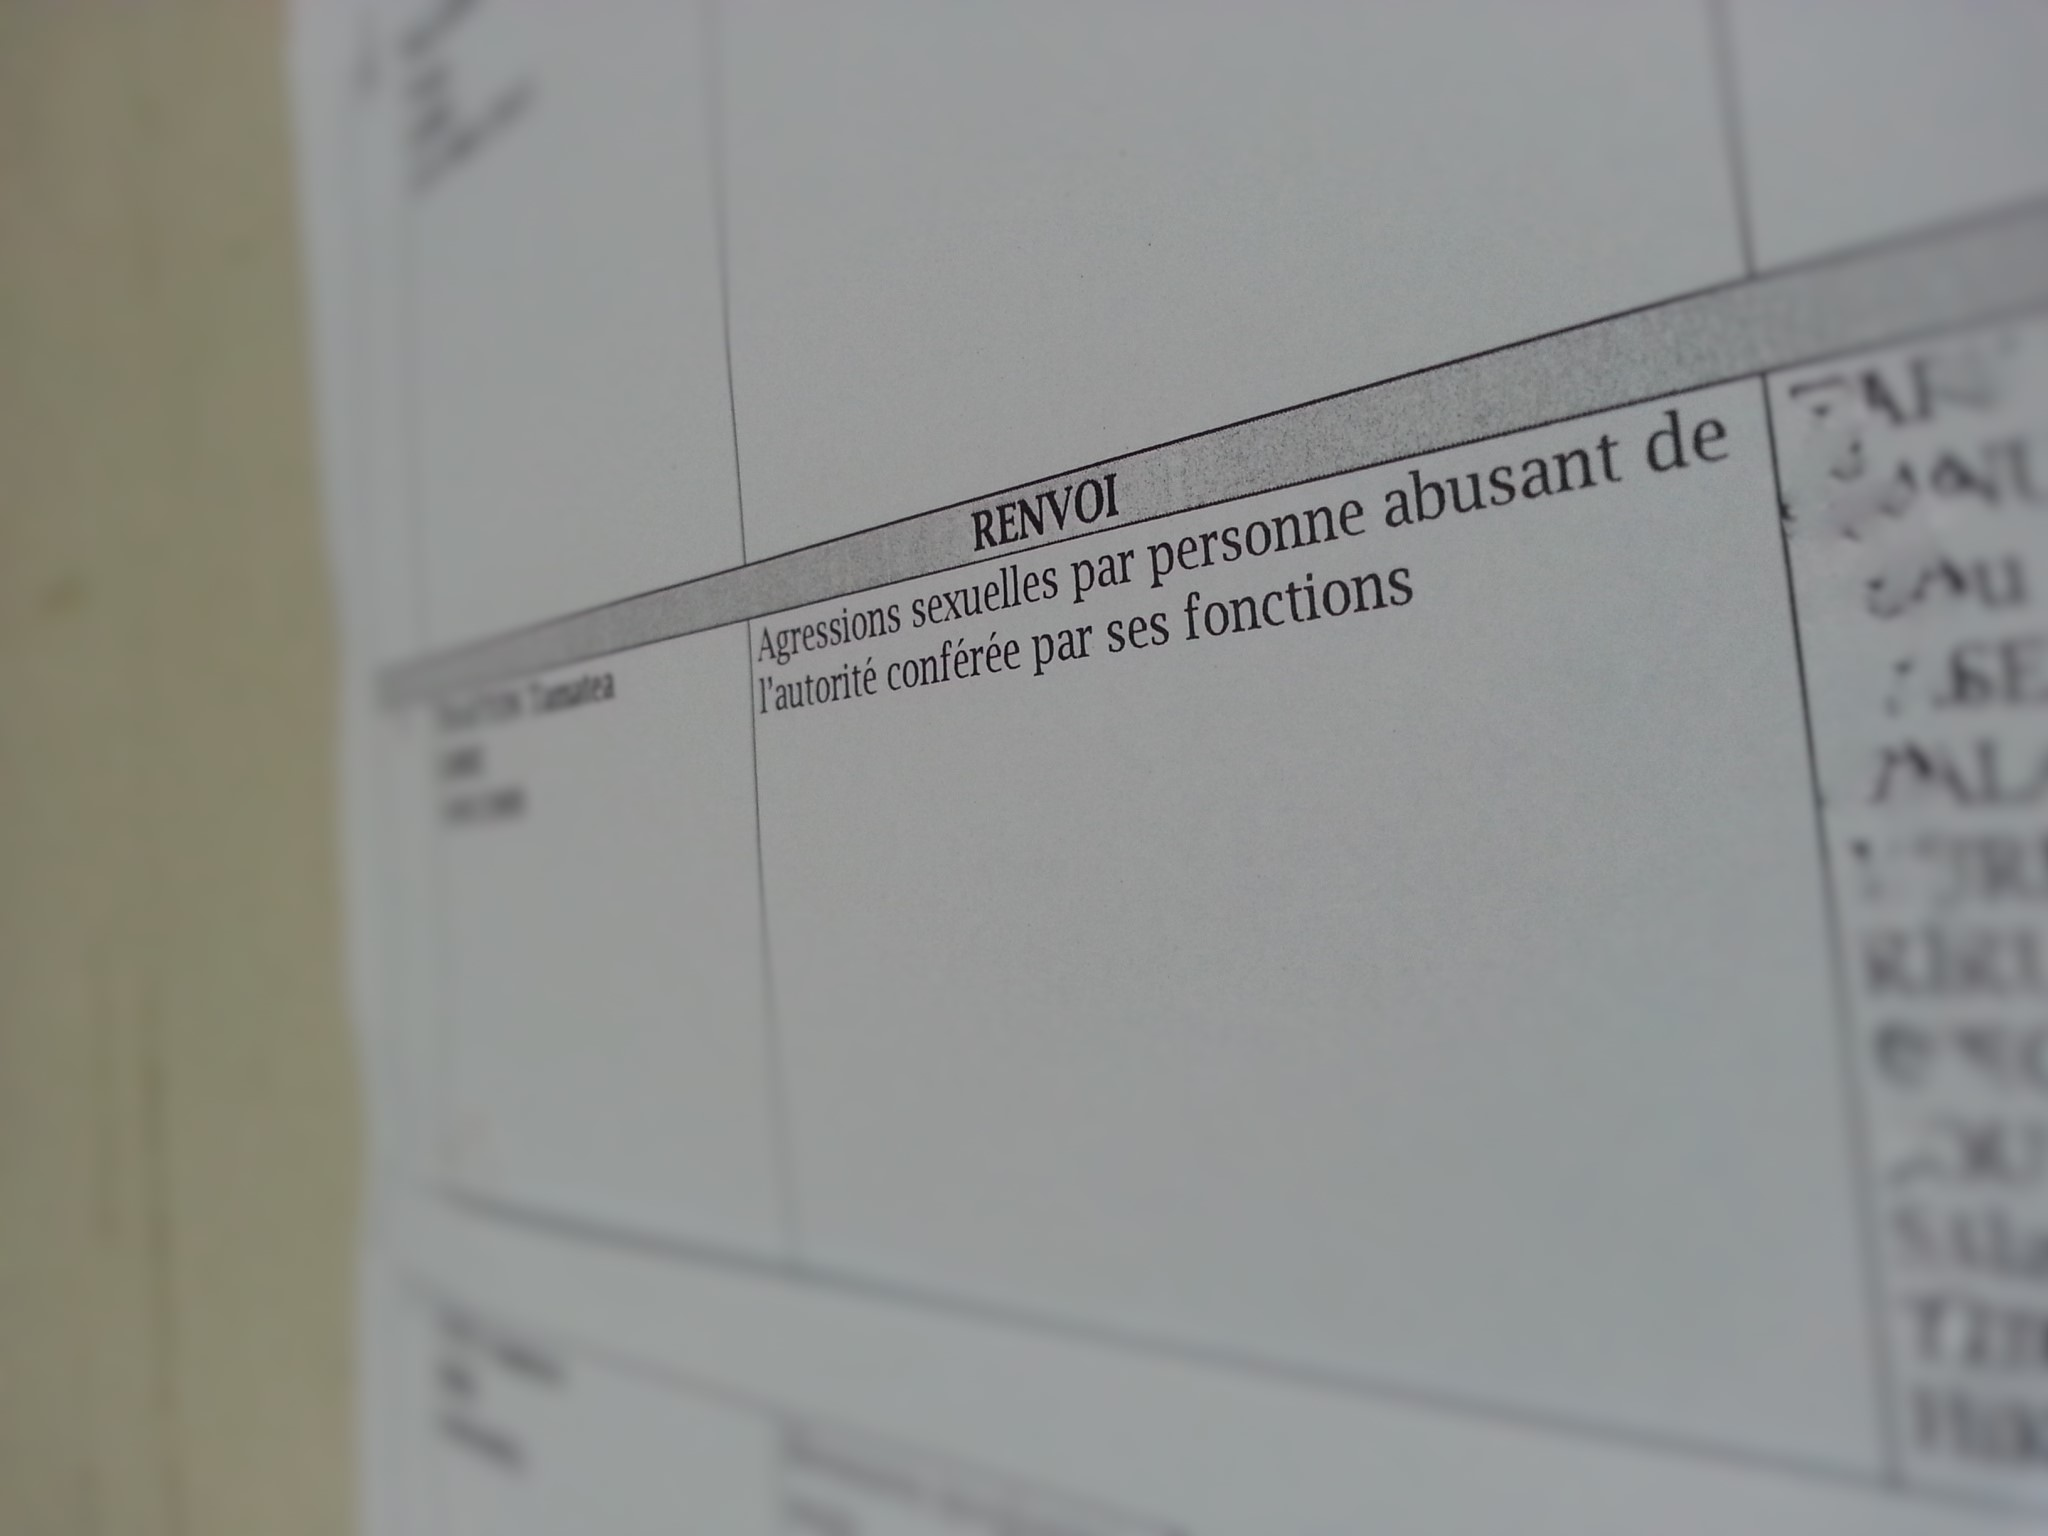 L'enseignant encourt de la prison ferme et une interdiction définitive d'exercer sa profession.